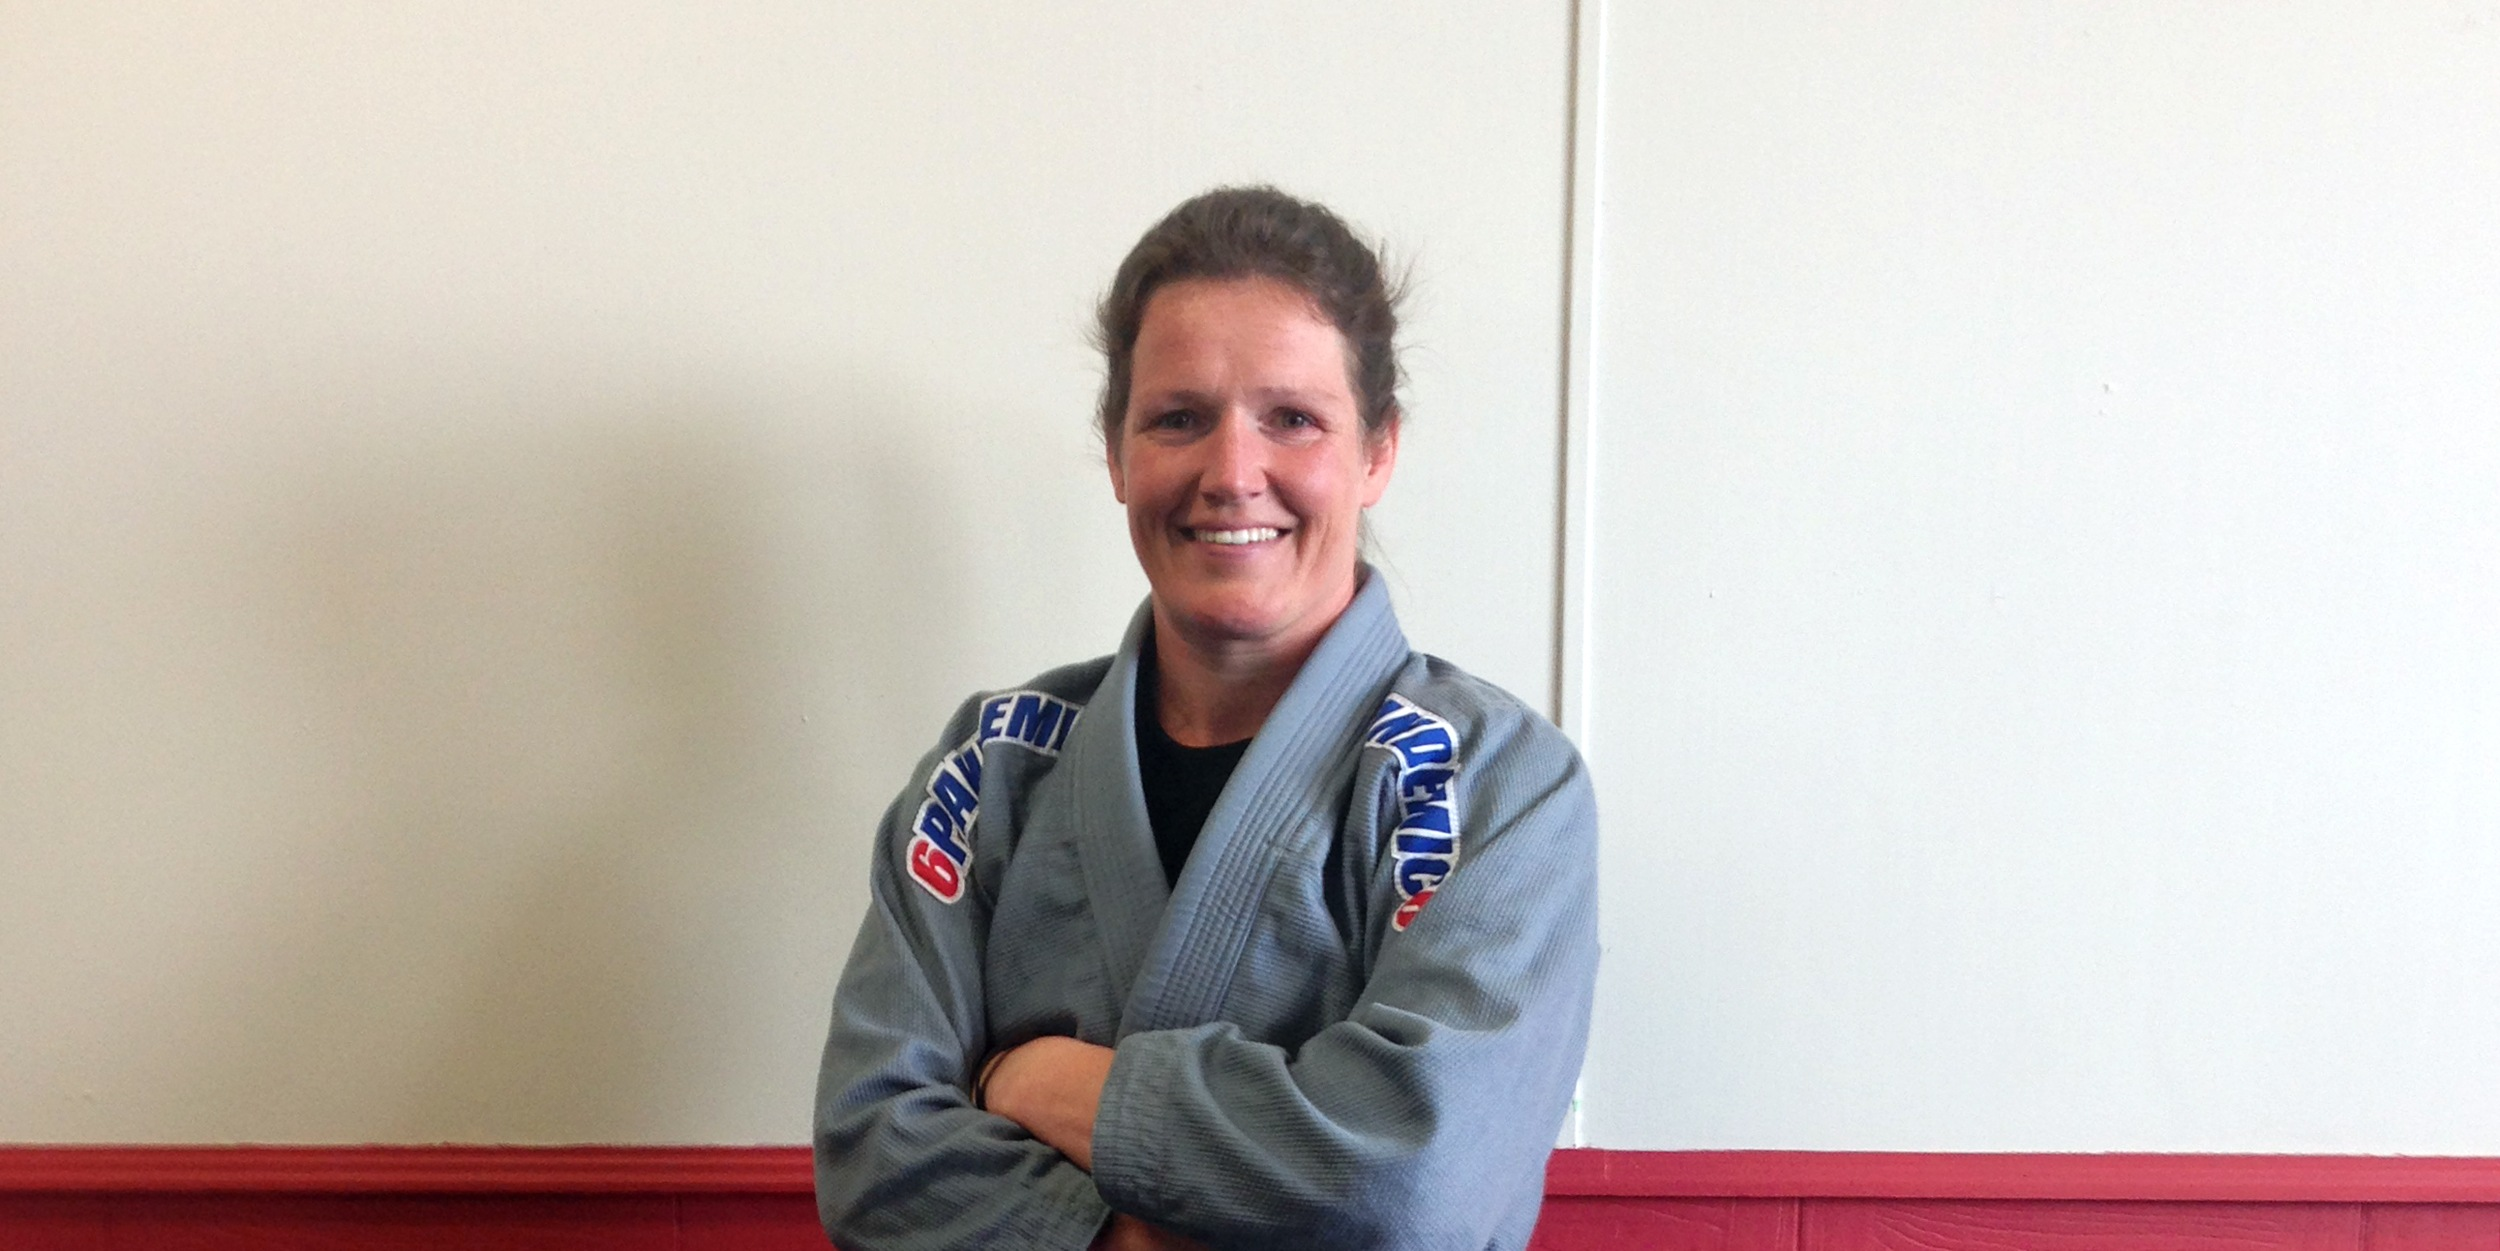 Join Sheila Bird and Top-Tier BJJ Instructors in a Medical Fundraiser